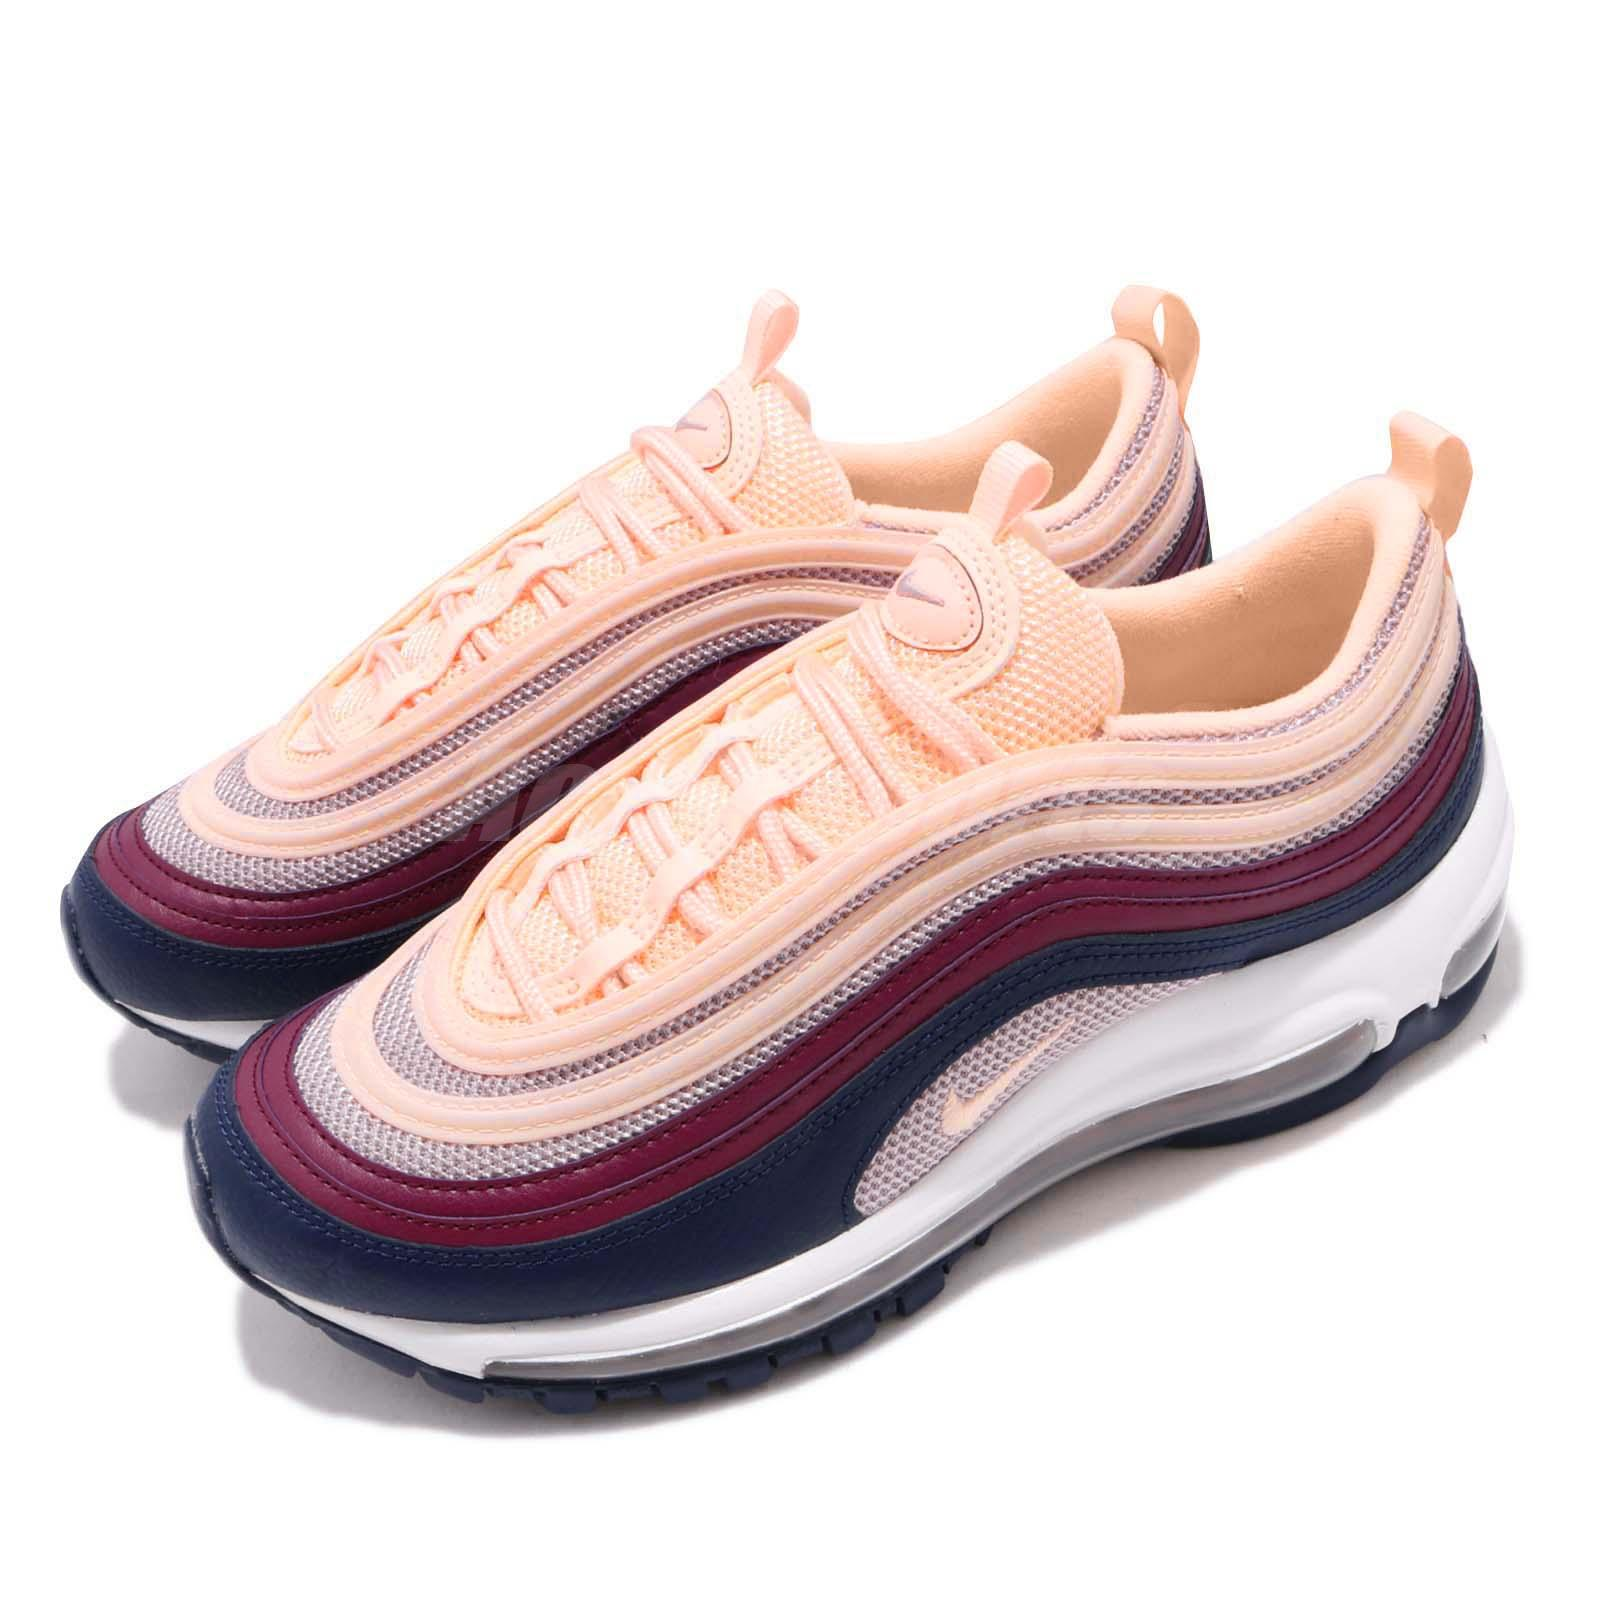 875228c62 Details about Nike Wmns Air Max 97 Plum Chalk Crimson Tint Women Running  Shoes 921733-802